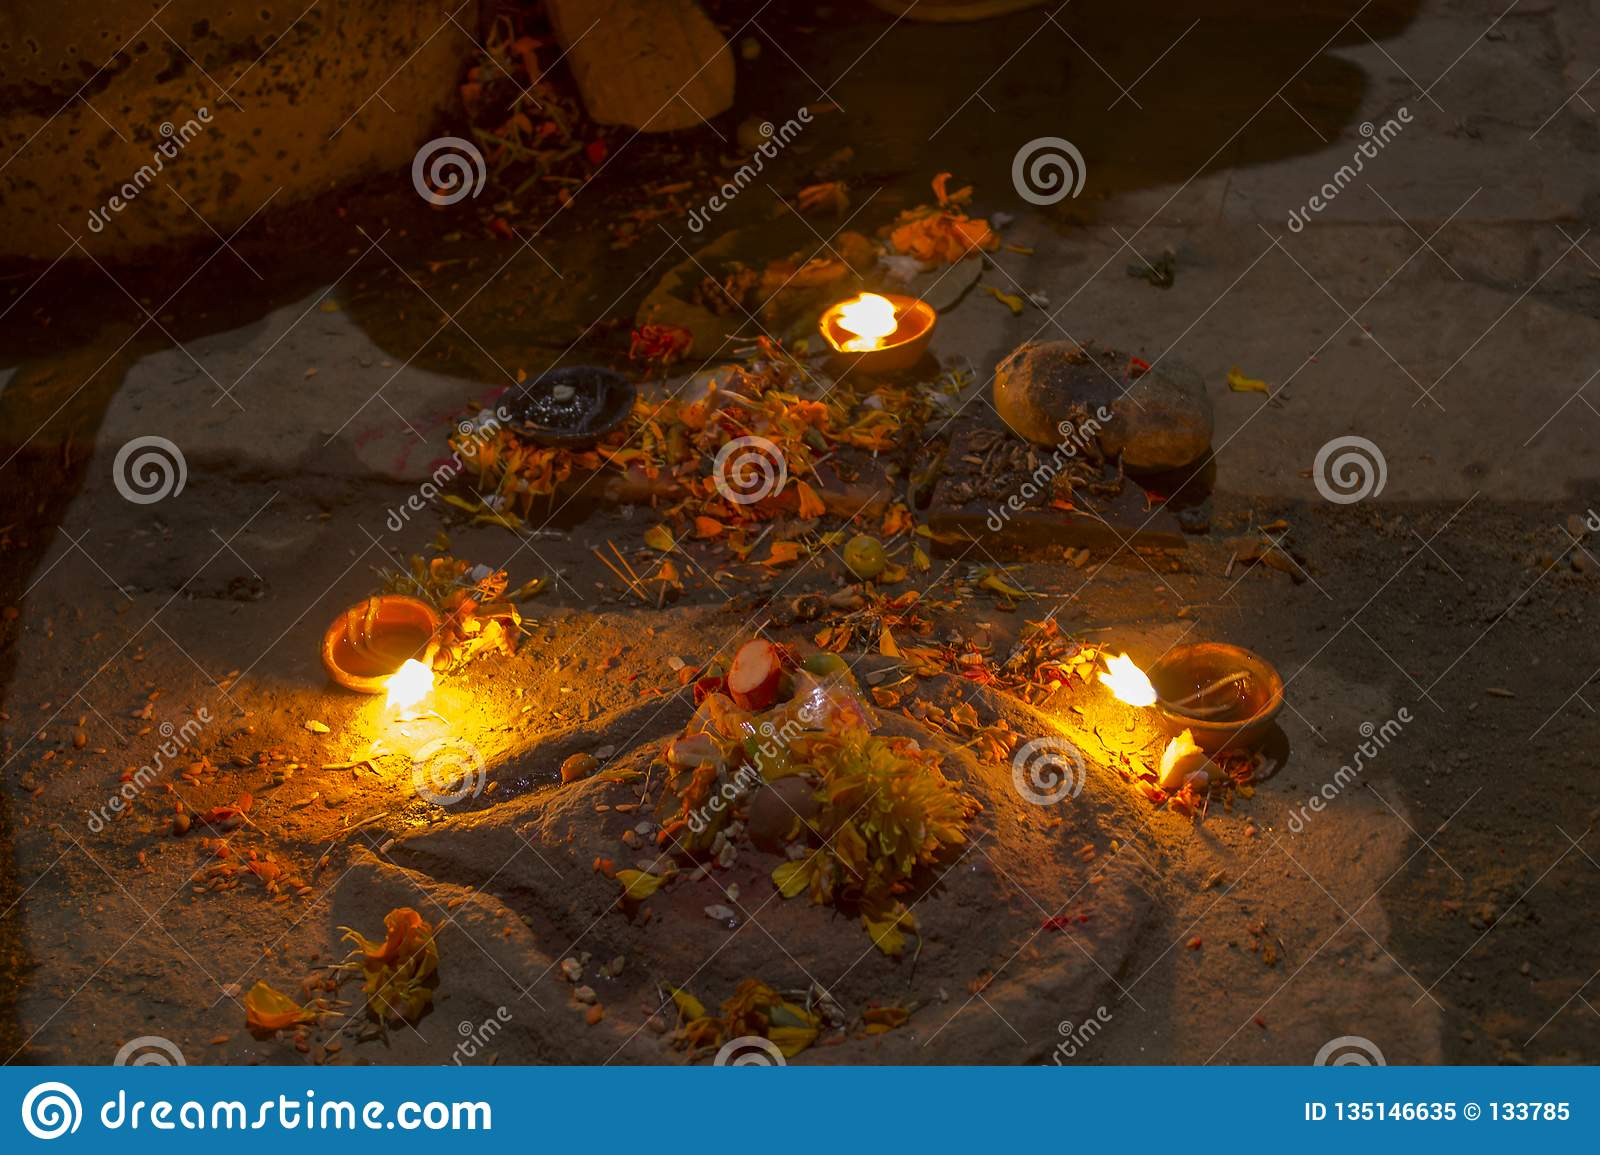 A Three Burning Candles Near The Ancient Altar With Flowers